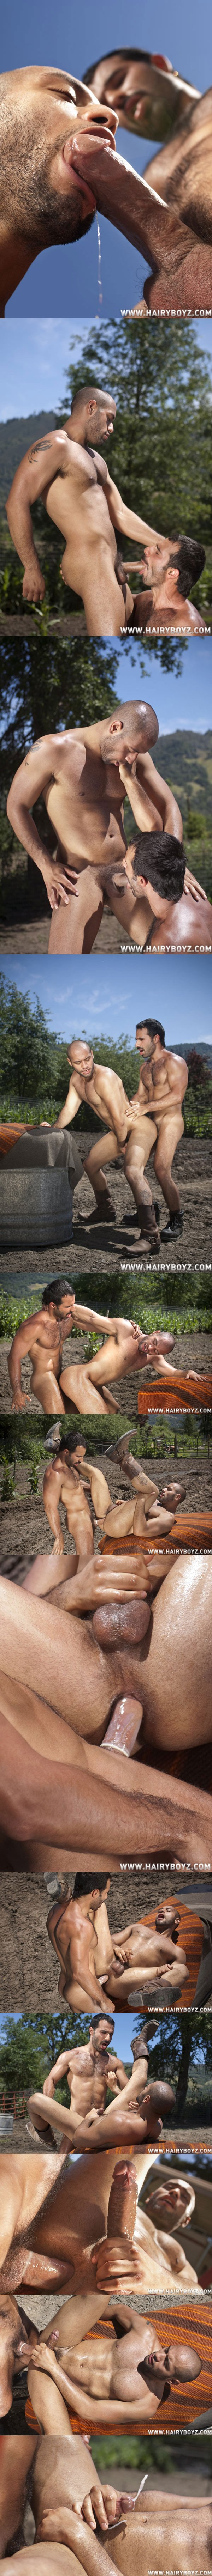 Cowboy Aybars plows furry Leo Forte at Hairyboyz 02